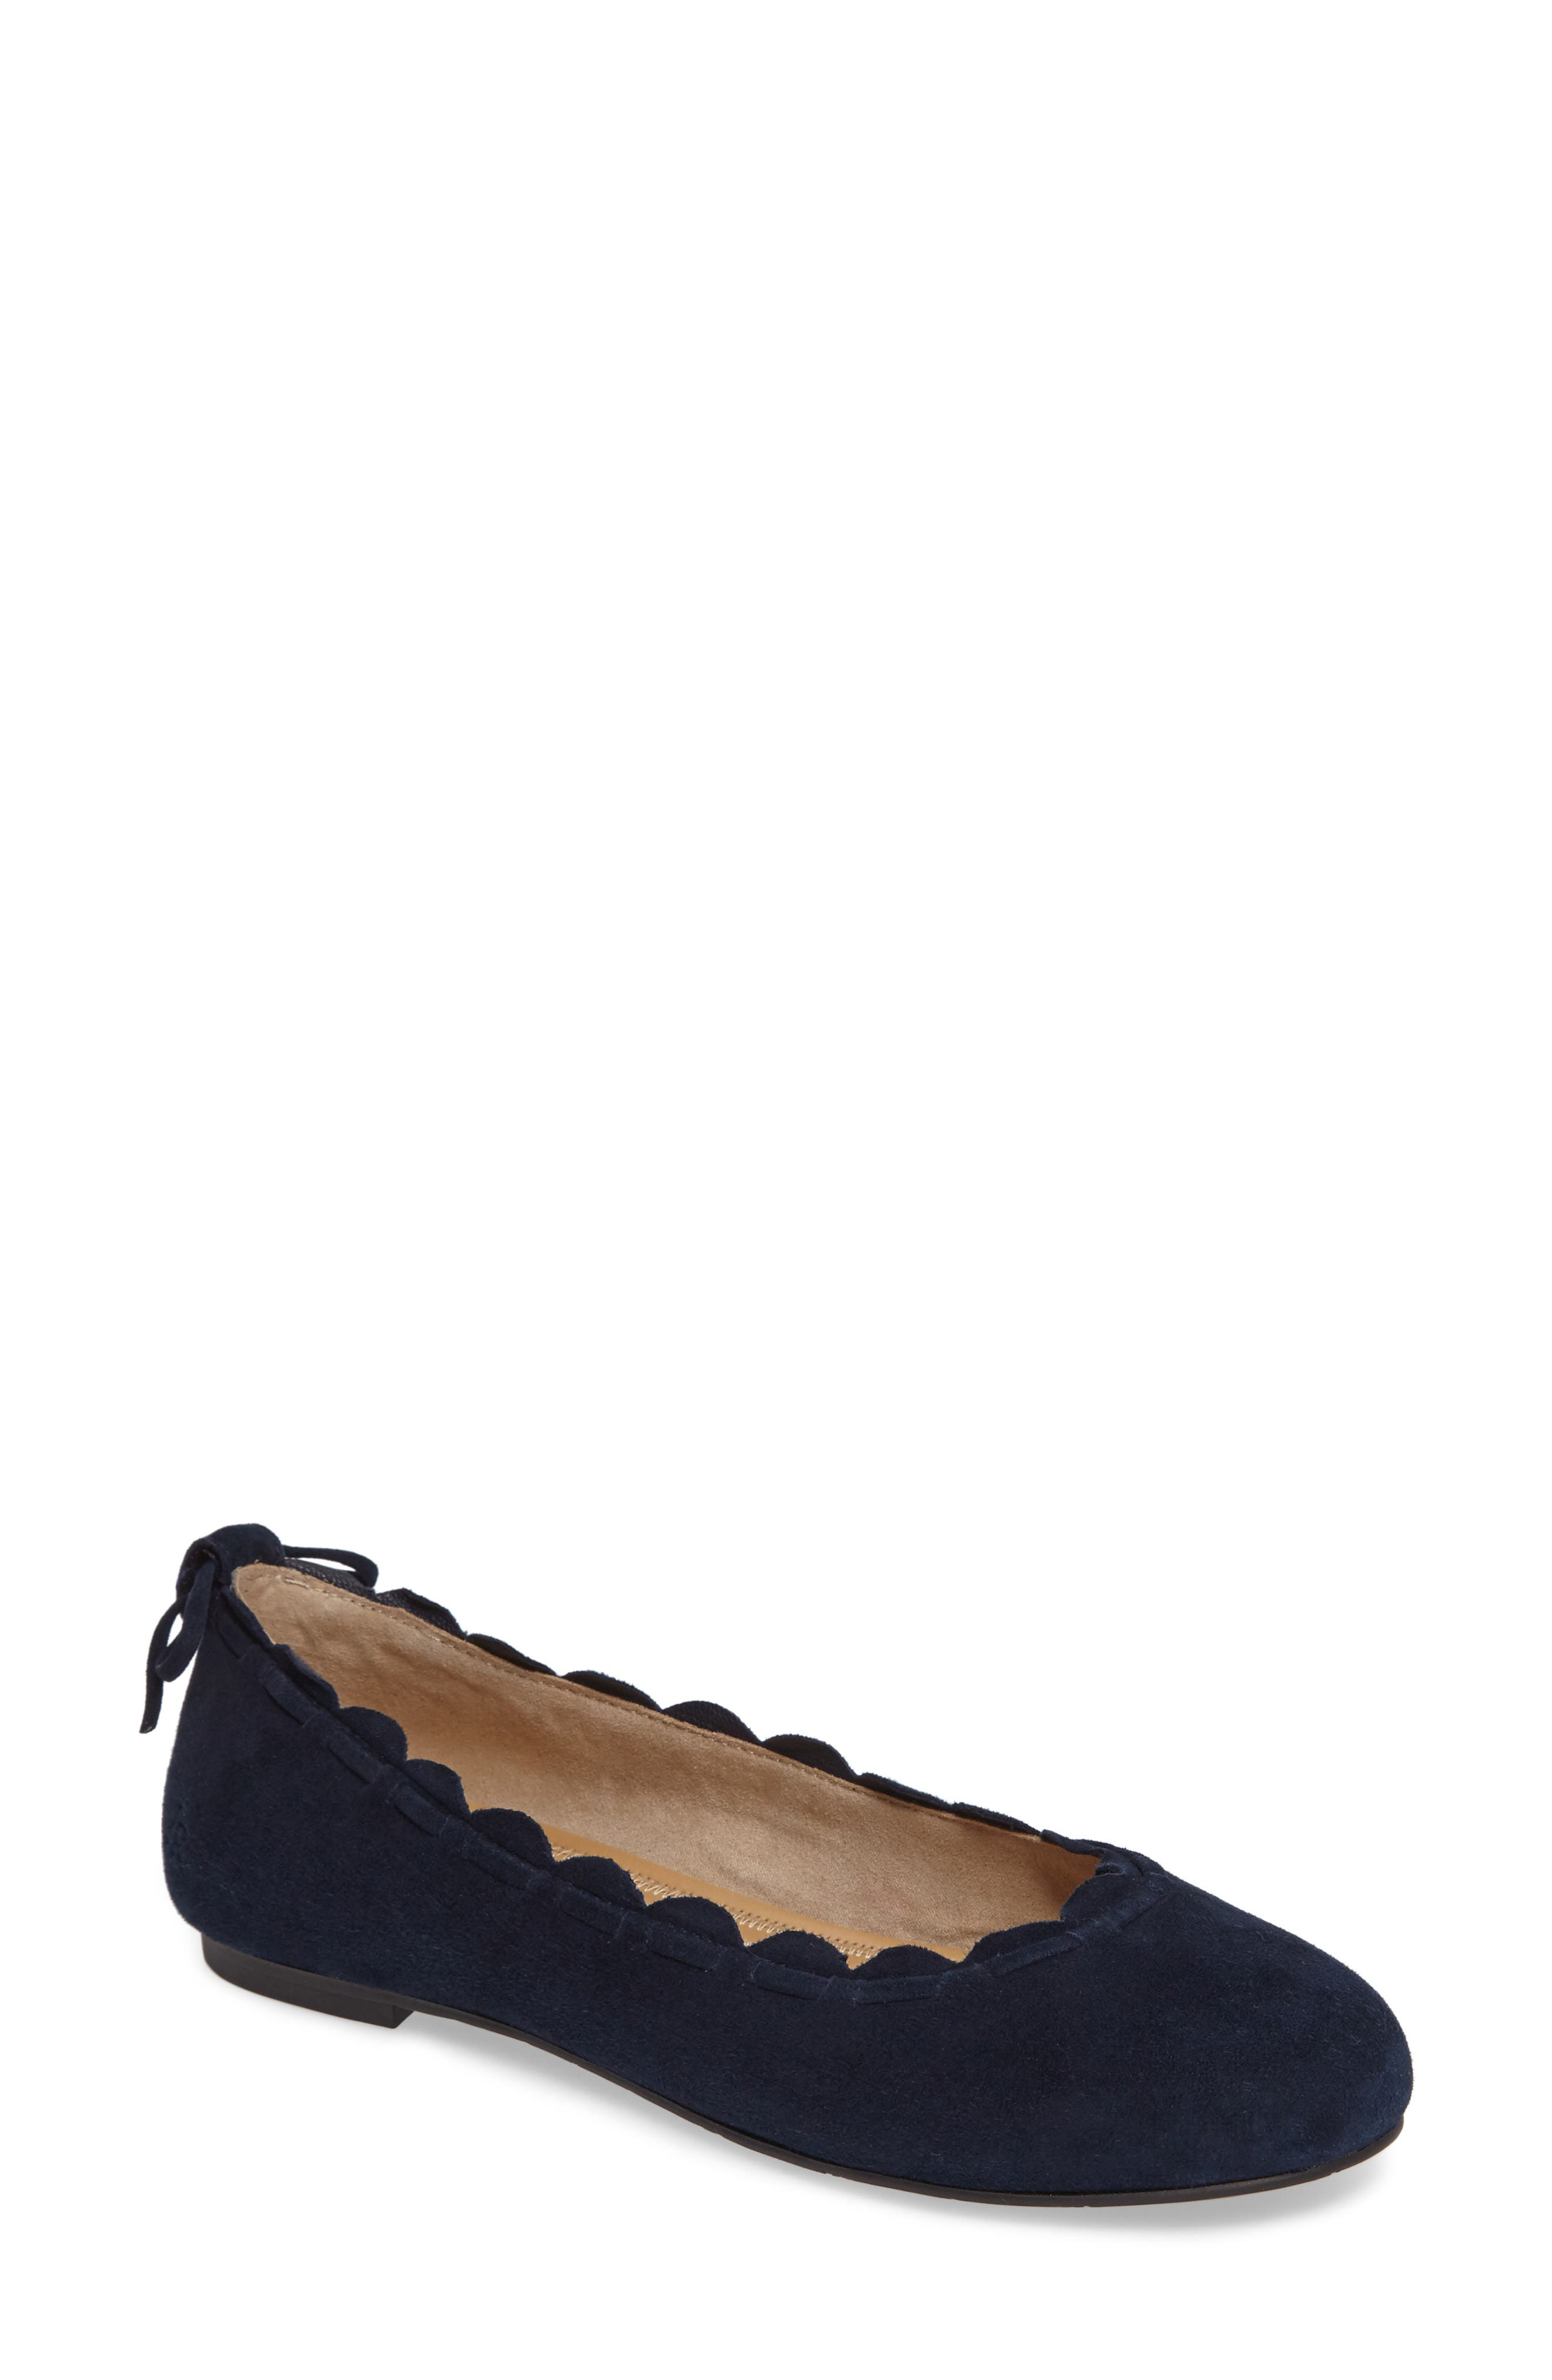 Alternate Image 1 Selected - Jack Rogers Lucie Scalloped Flat (Women)